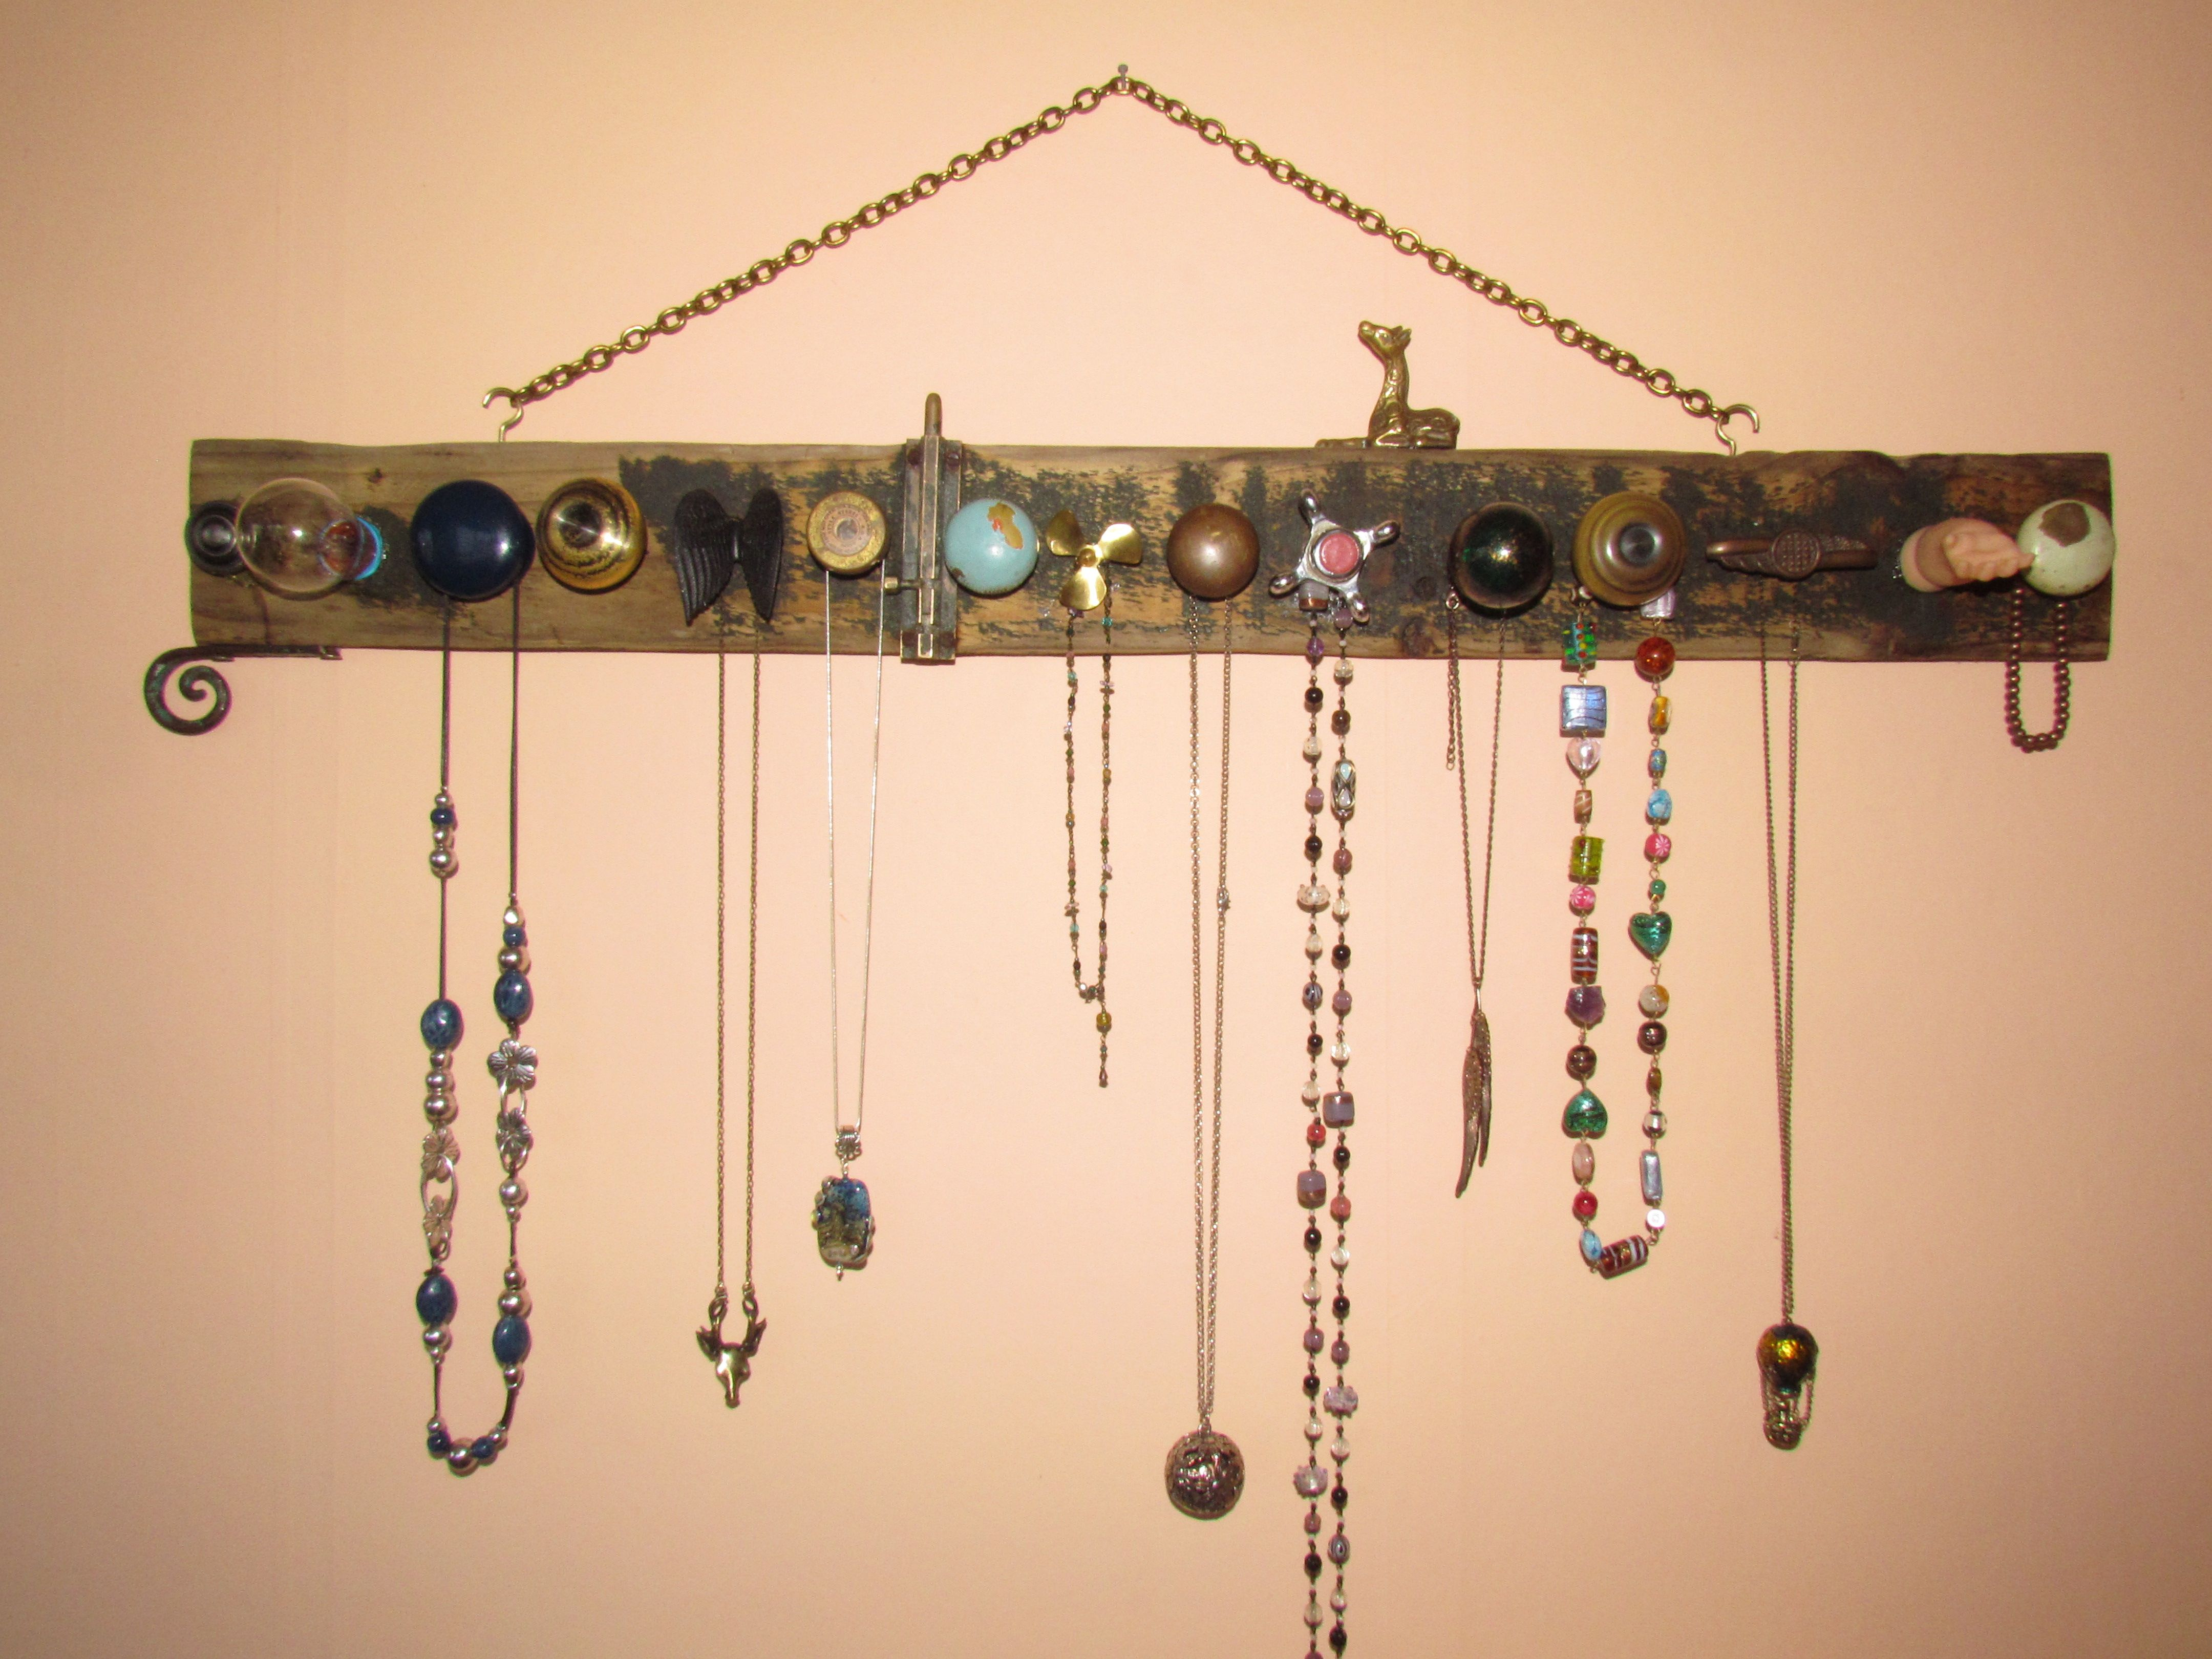 Necklace hanger made from old knobs, light bulbs etc